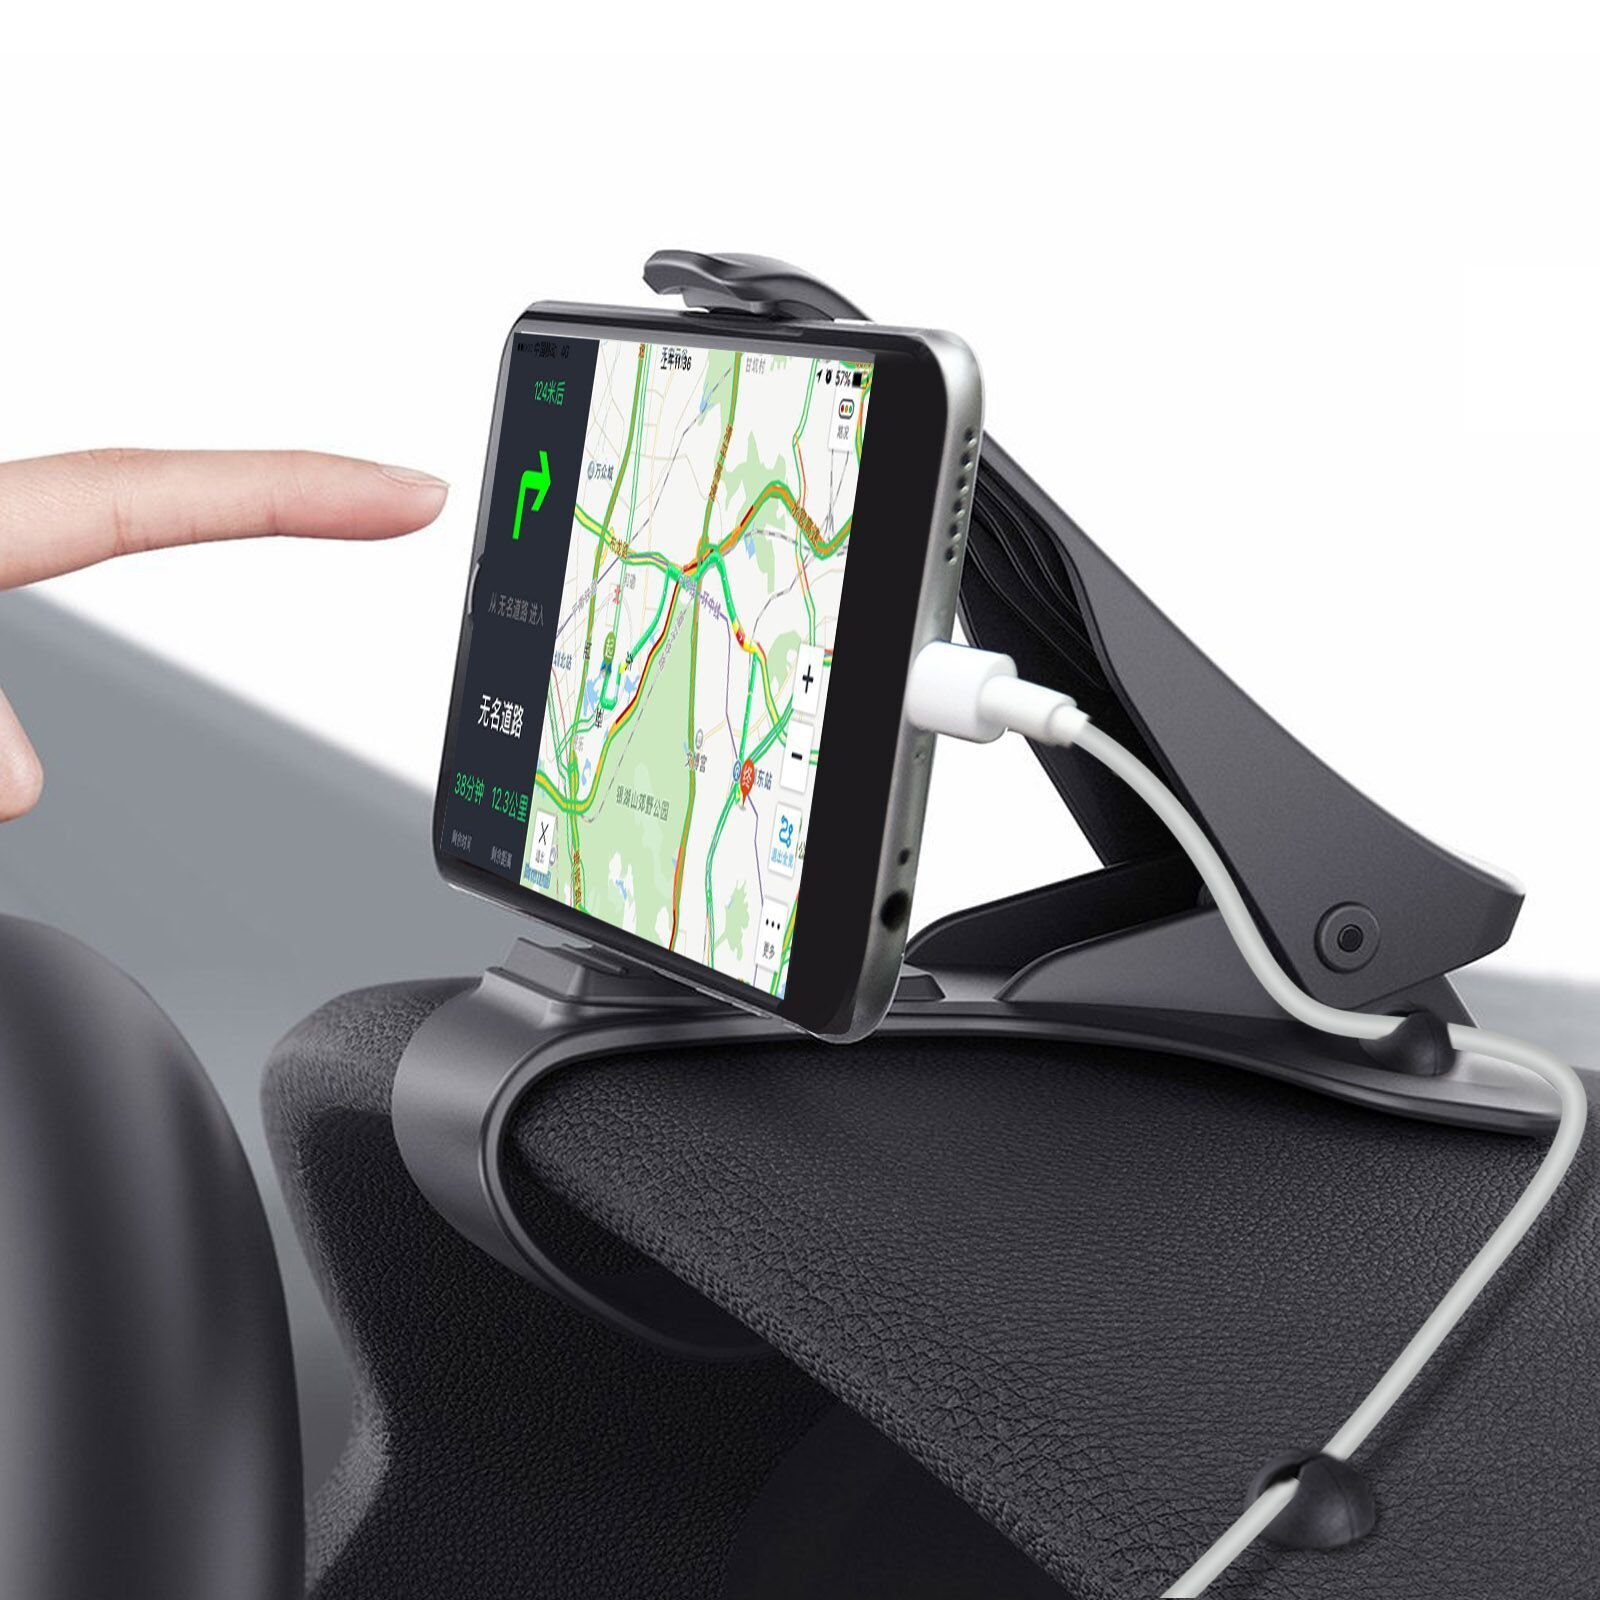 Car Phone Holder, MWAY Car Mount HUD Design with Cable Clips, No Blocking for Sight, Durable Dashboard Cell Phone Holder for iPhone X 8 7/7Plus/6/6S Plus/Samsung, HuaWei, 3.5-6.5 Inches Smartphones